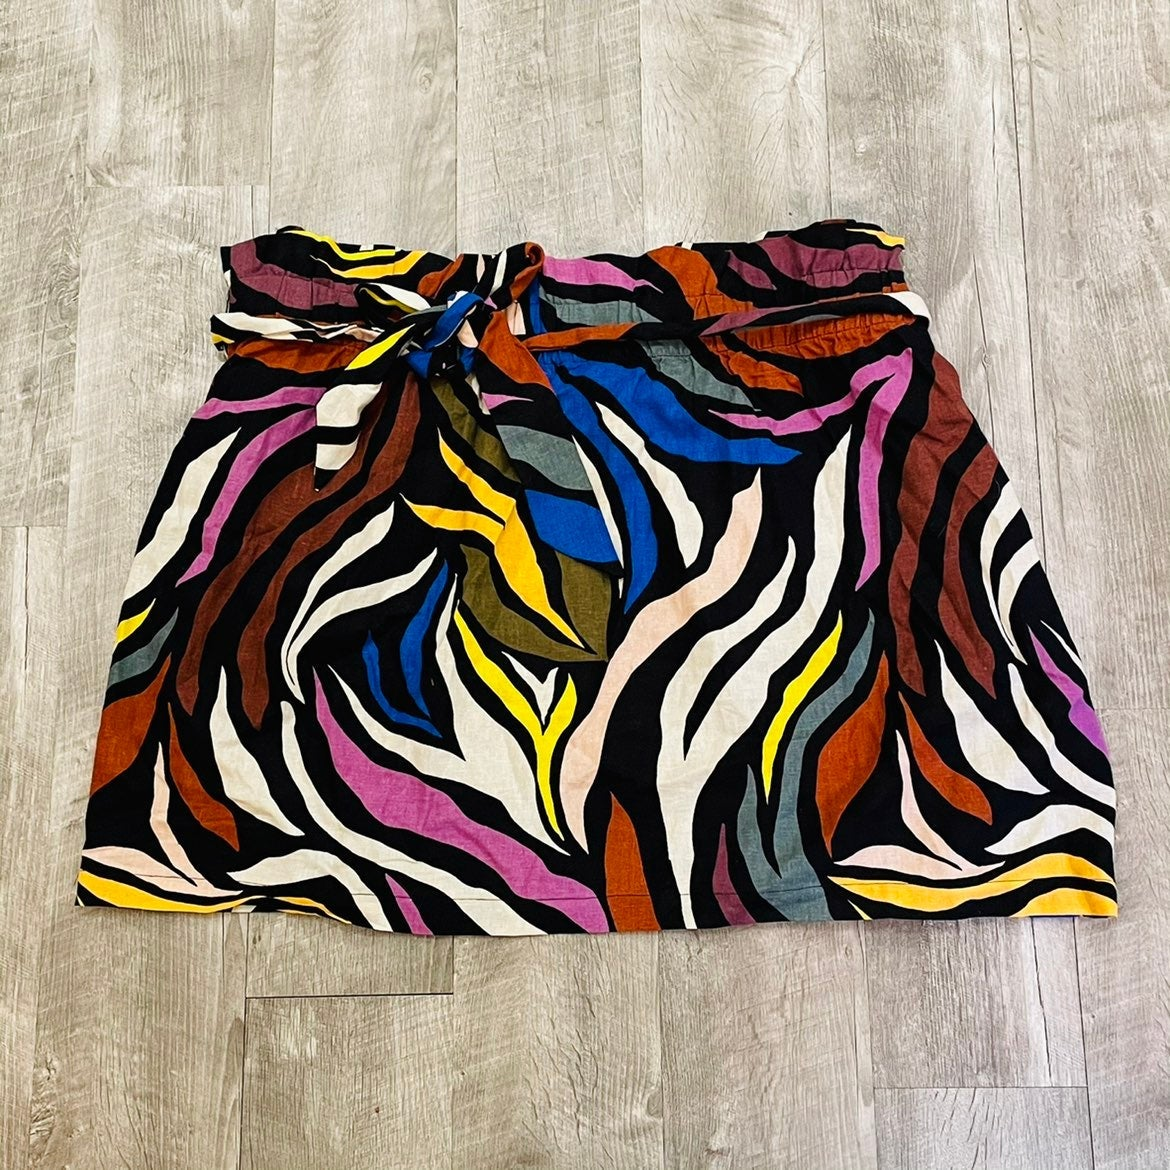 Plus size colorful skirt 3X